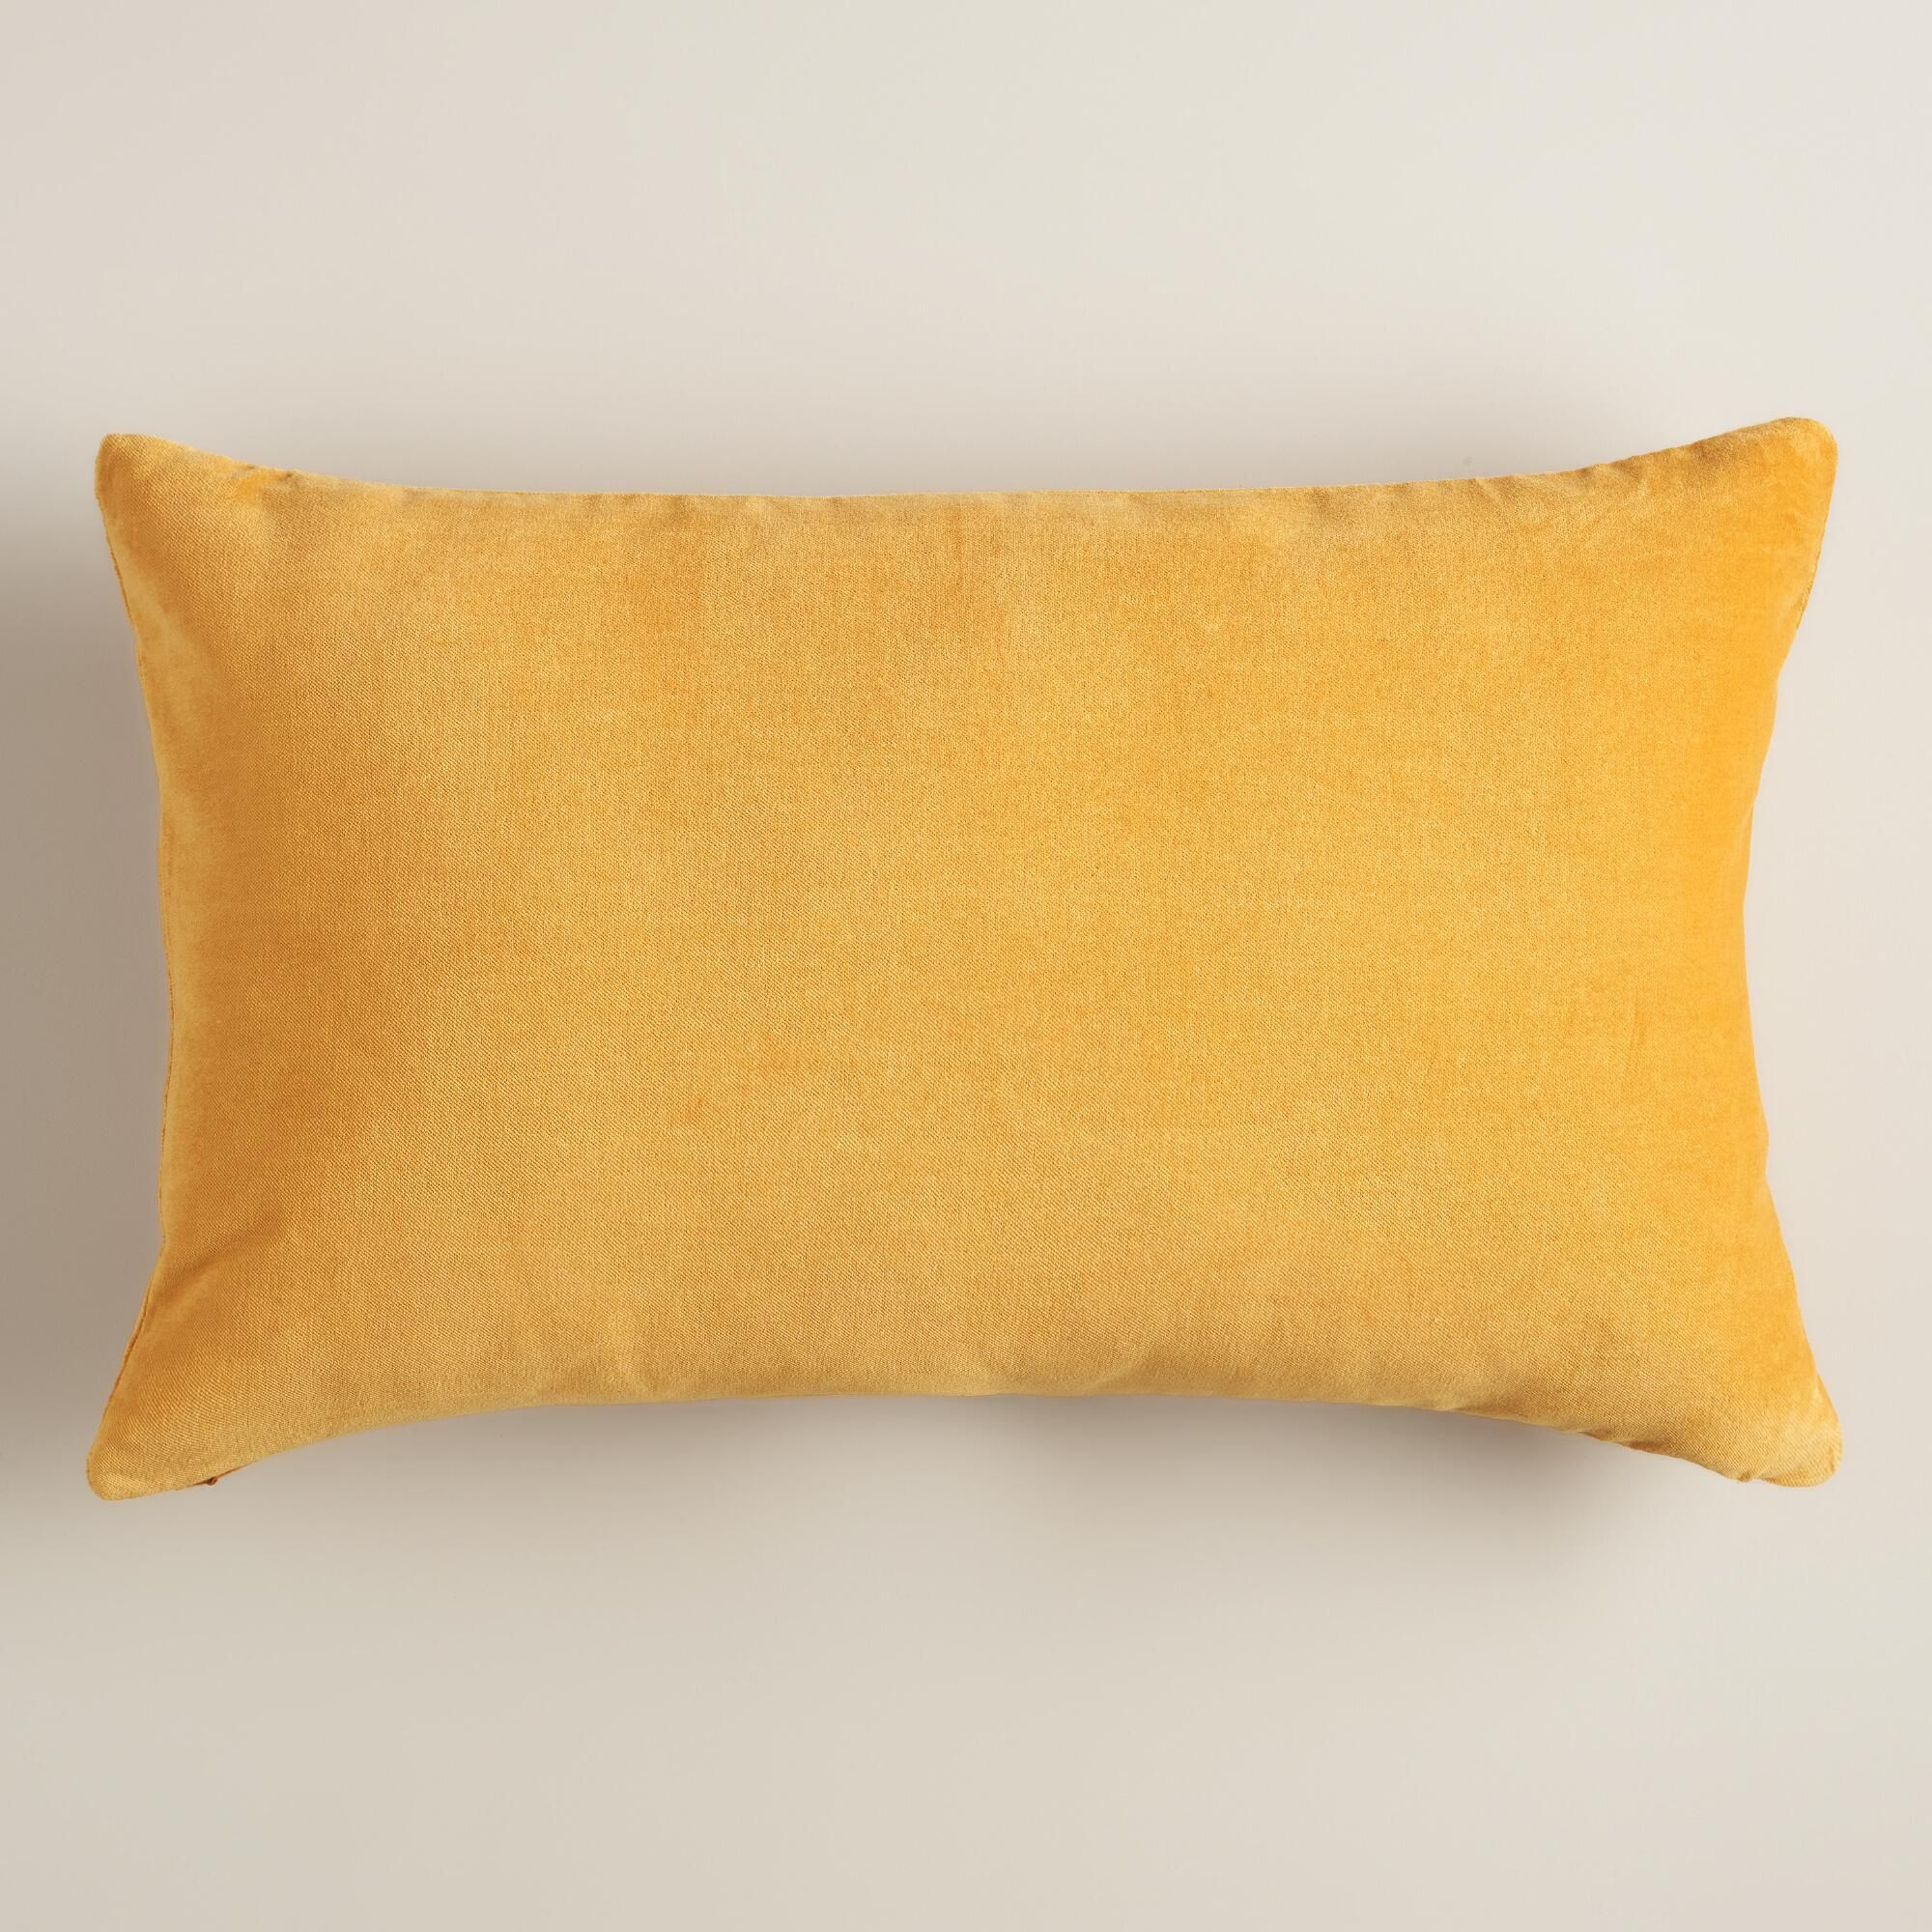 Mustard Yellow Smocked Pillow Price From 29 Free Worldwide Shipping Can Be Made Any Size Or Colo Yellow Throw Pillows Yellow Cushion Covers Yellow Cushions